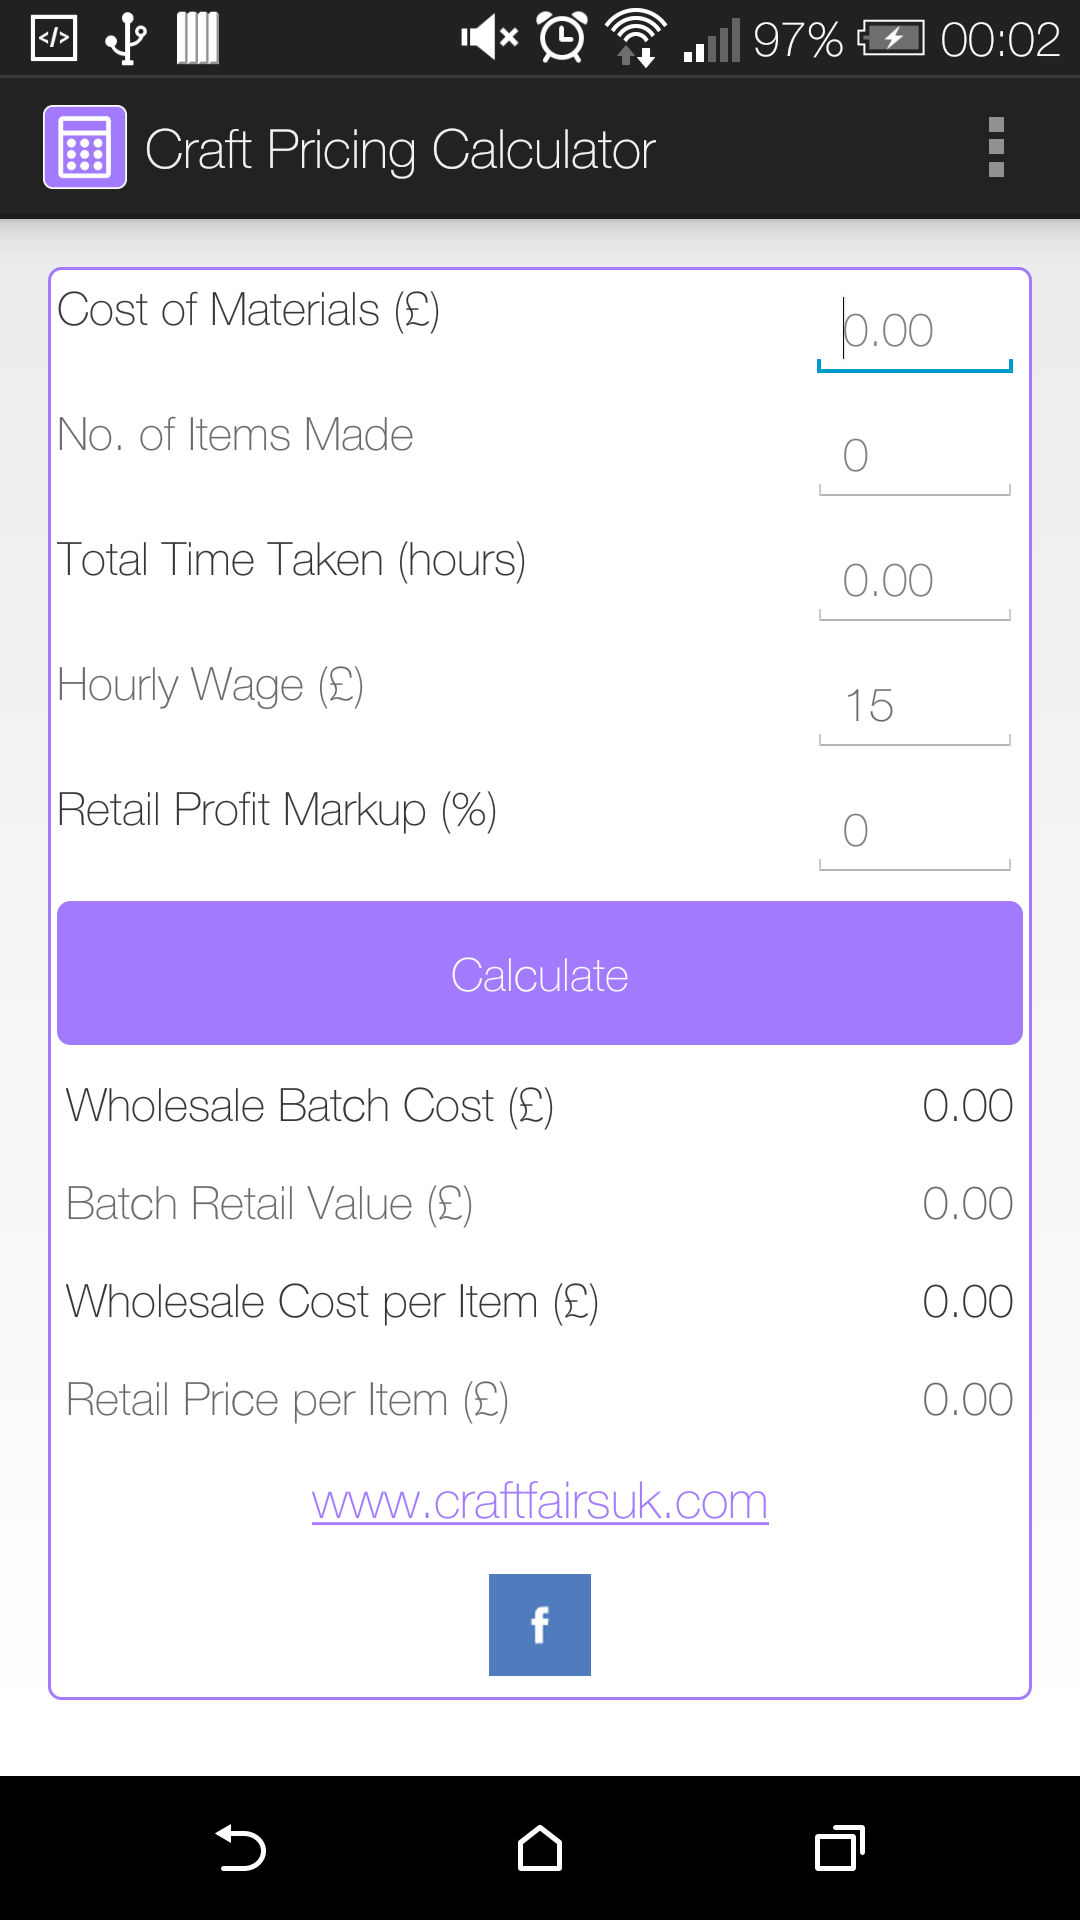 amazon com craft pricing calculator appstore for android